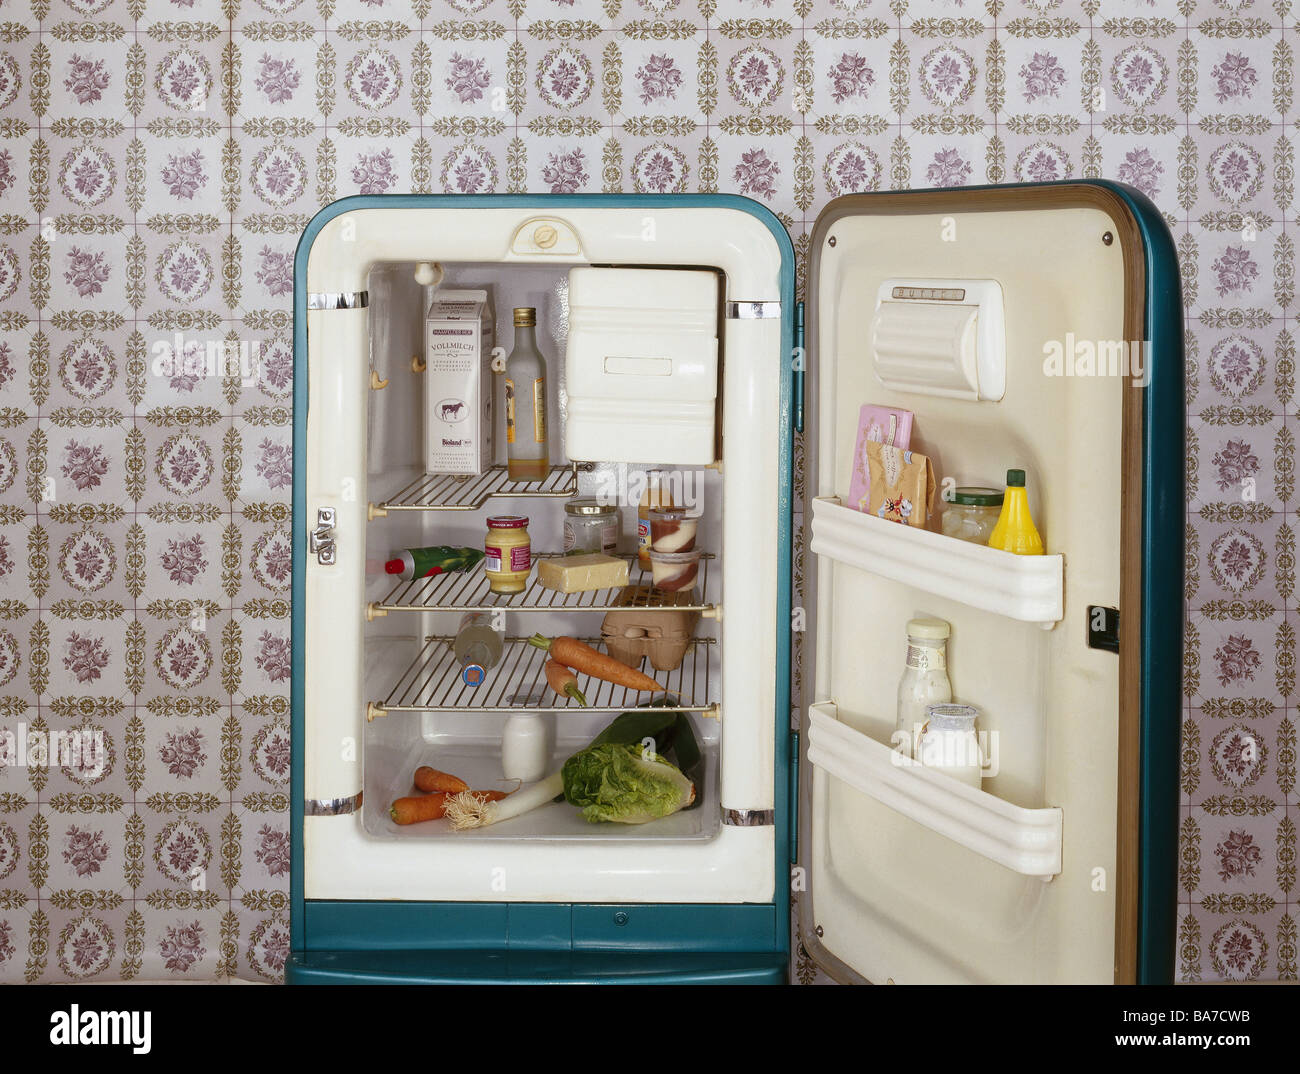 Retro Kitchen Appliance Refrigerator Openly Food Beverage Wallpaper Retro Kitchen